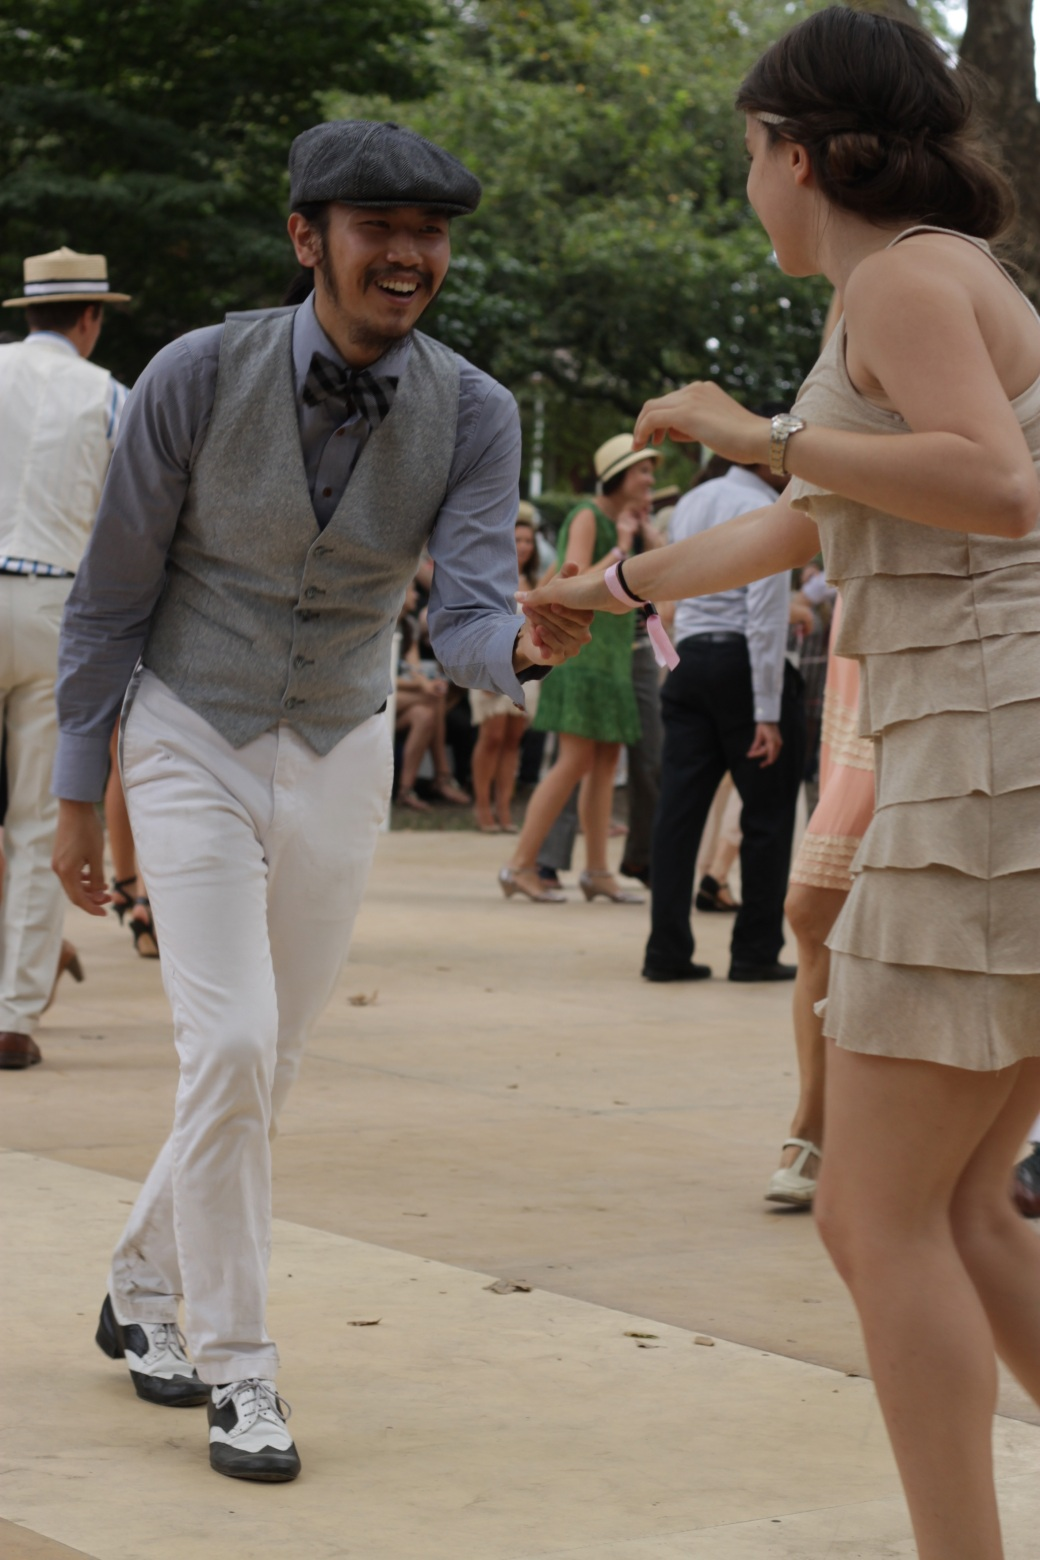 new york city governors island jazz age lawn party august 17 2014 89